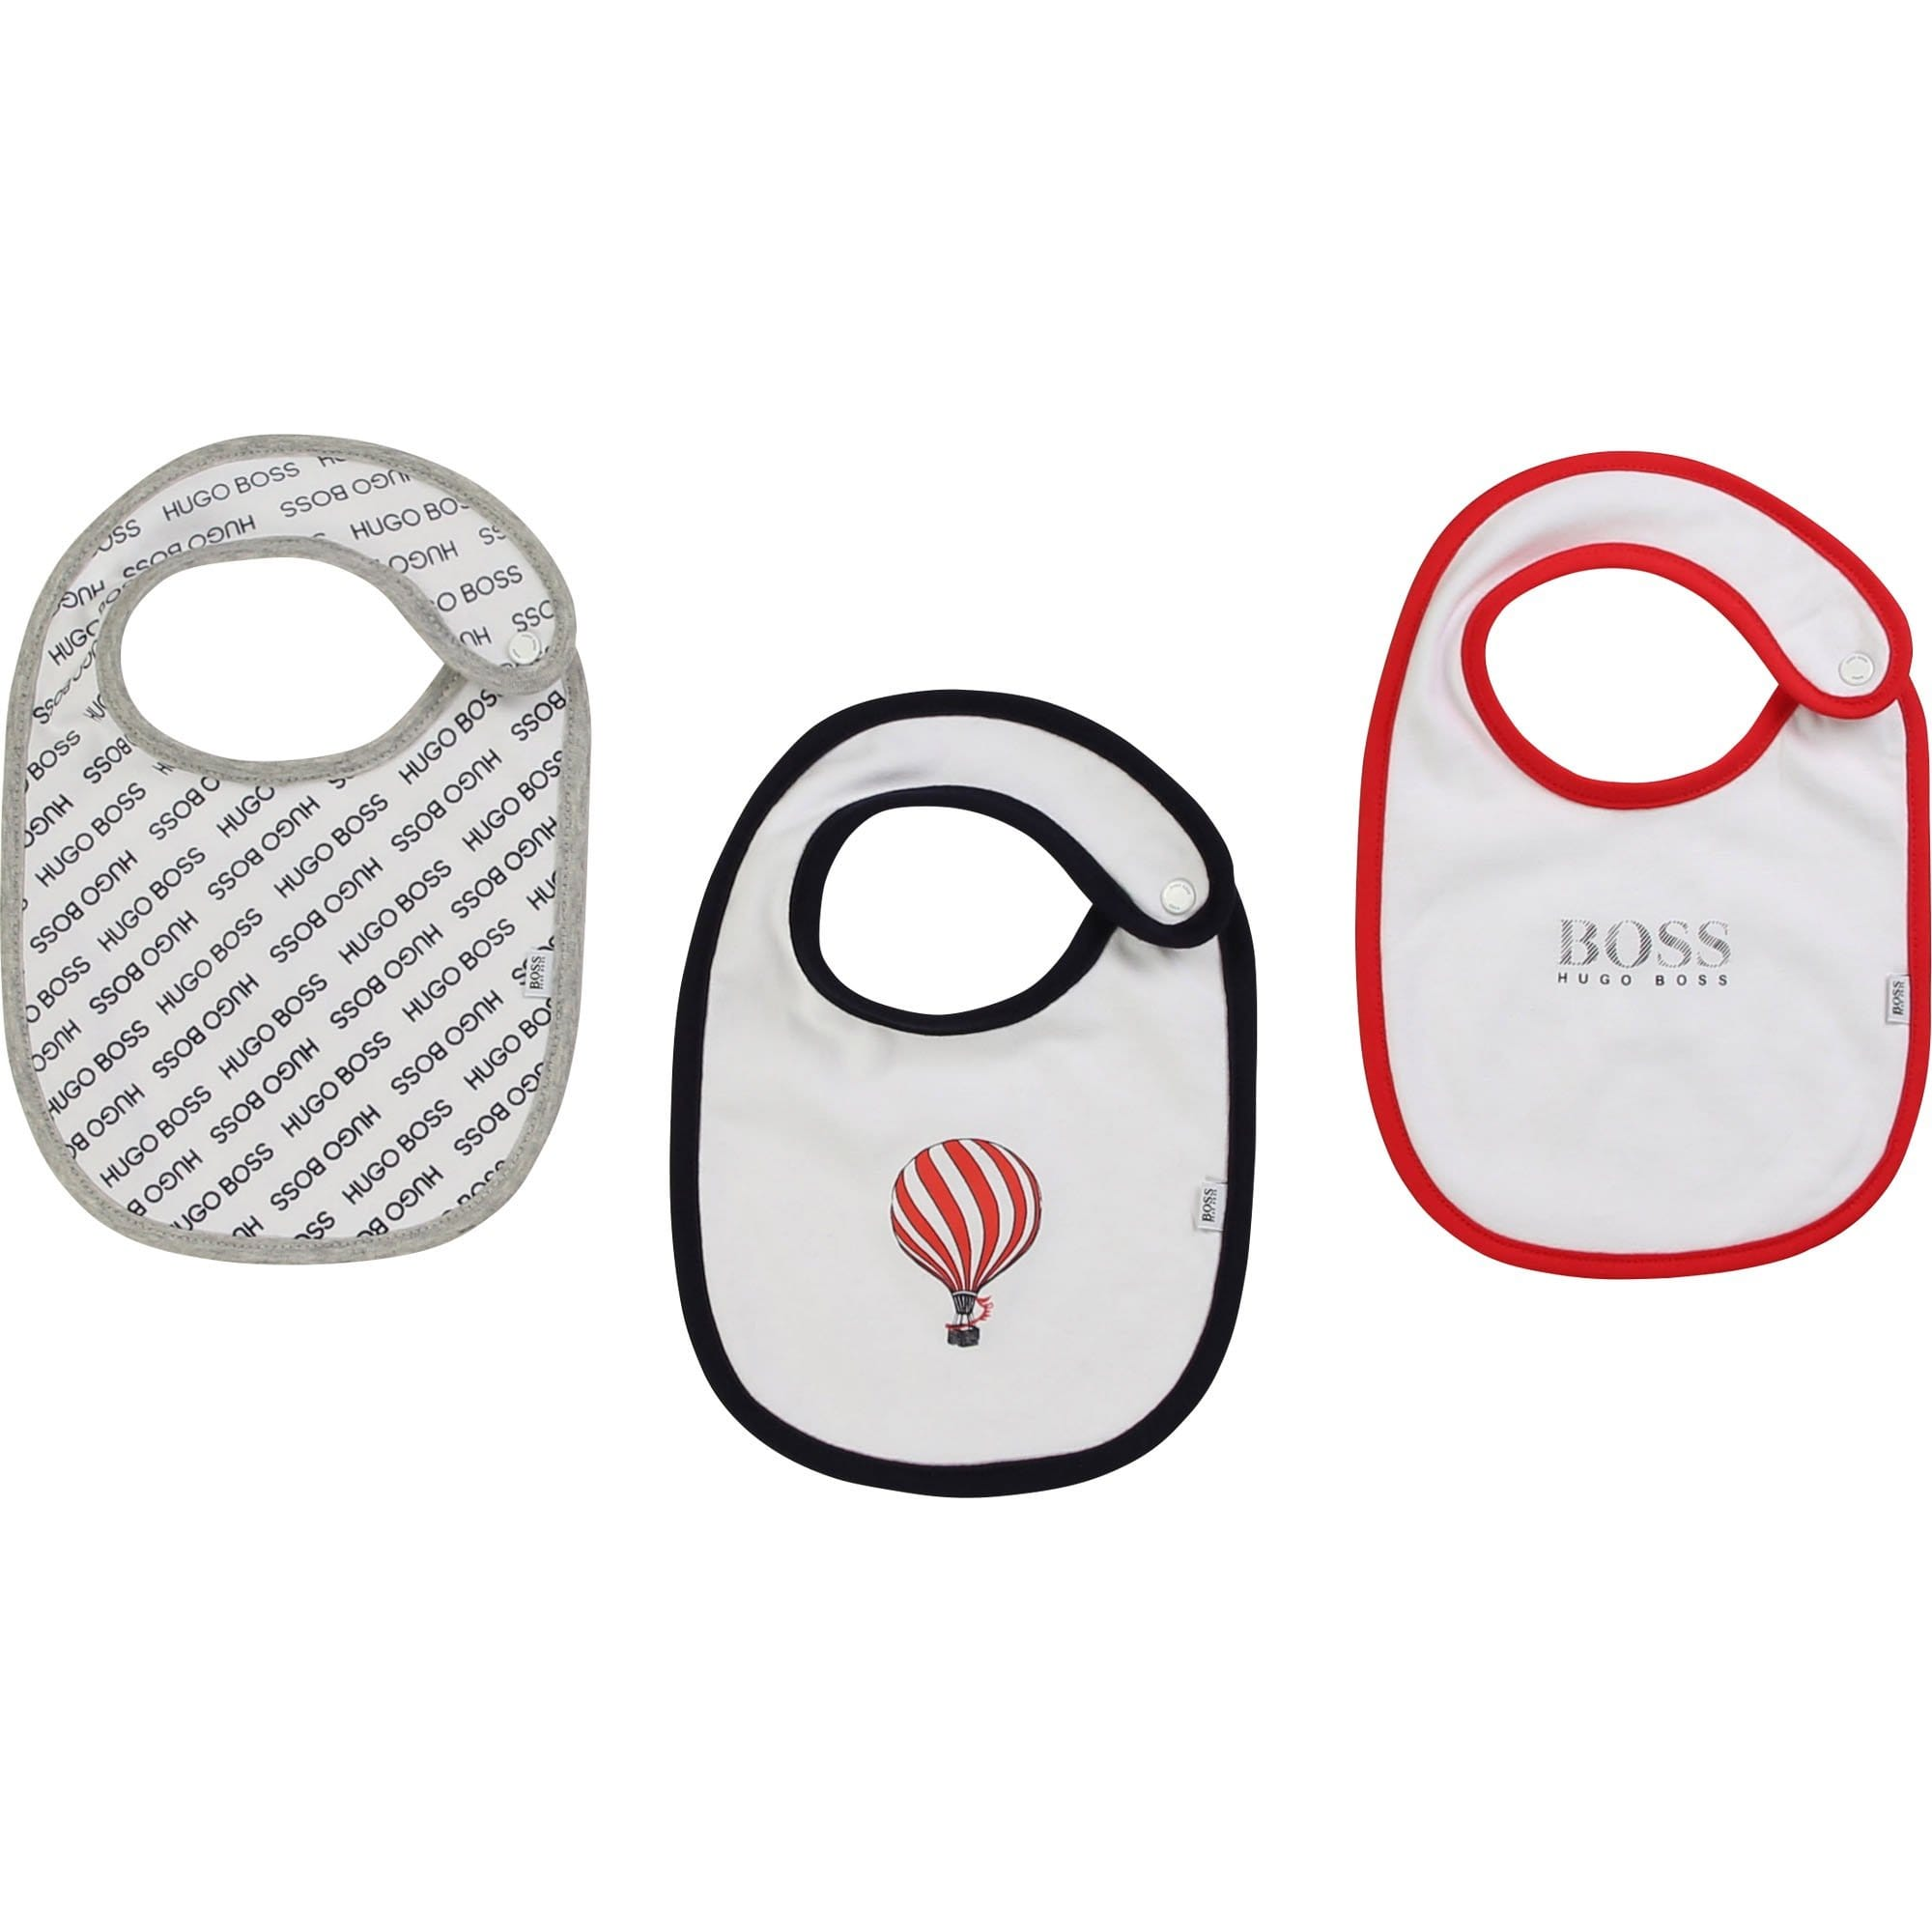 Hugo Boss 3 Bib Set